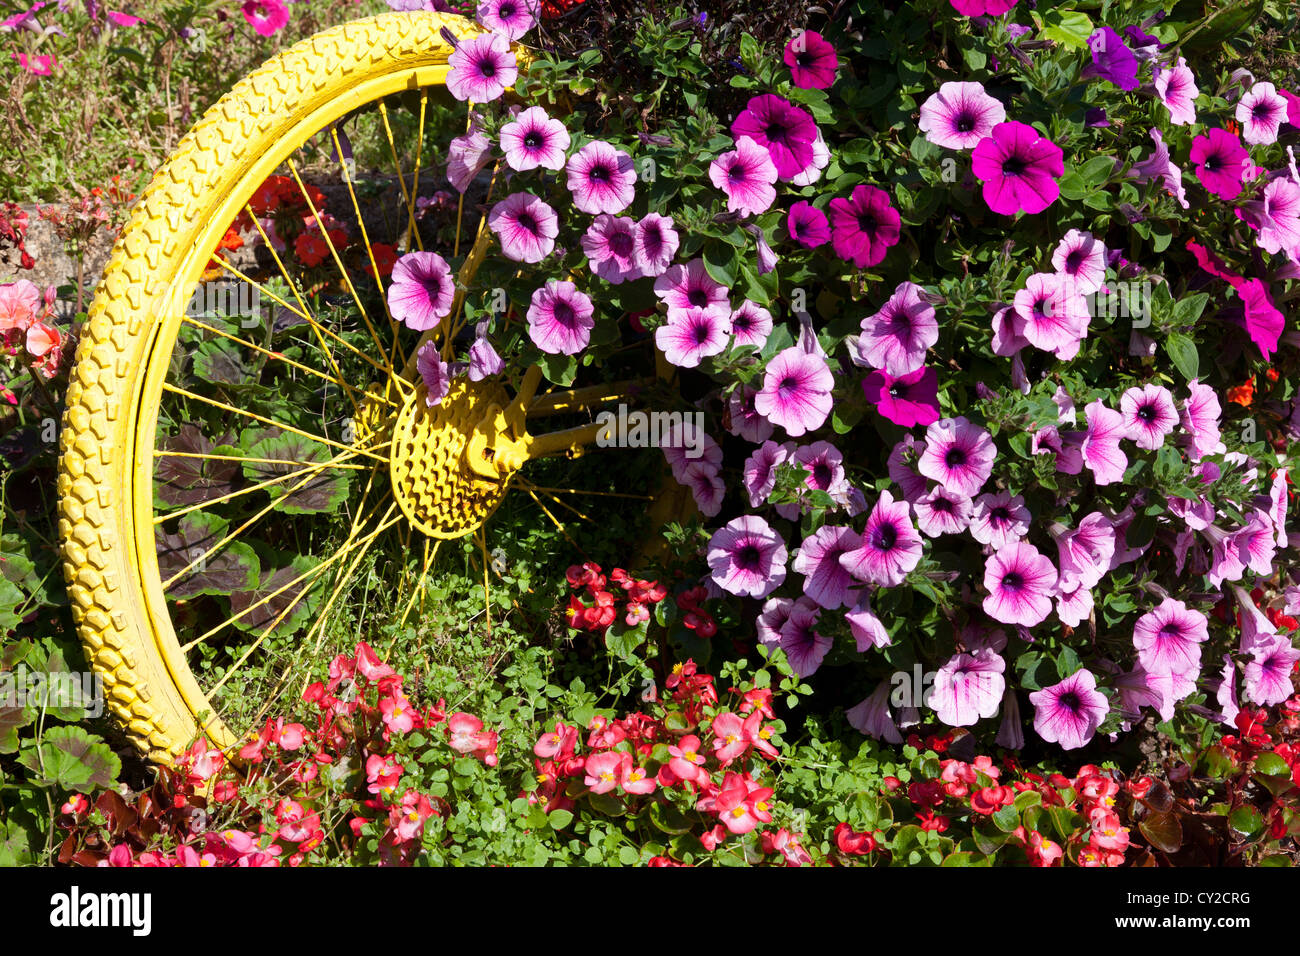 floral-display-including-painted-bicycle